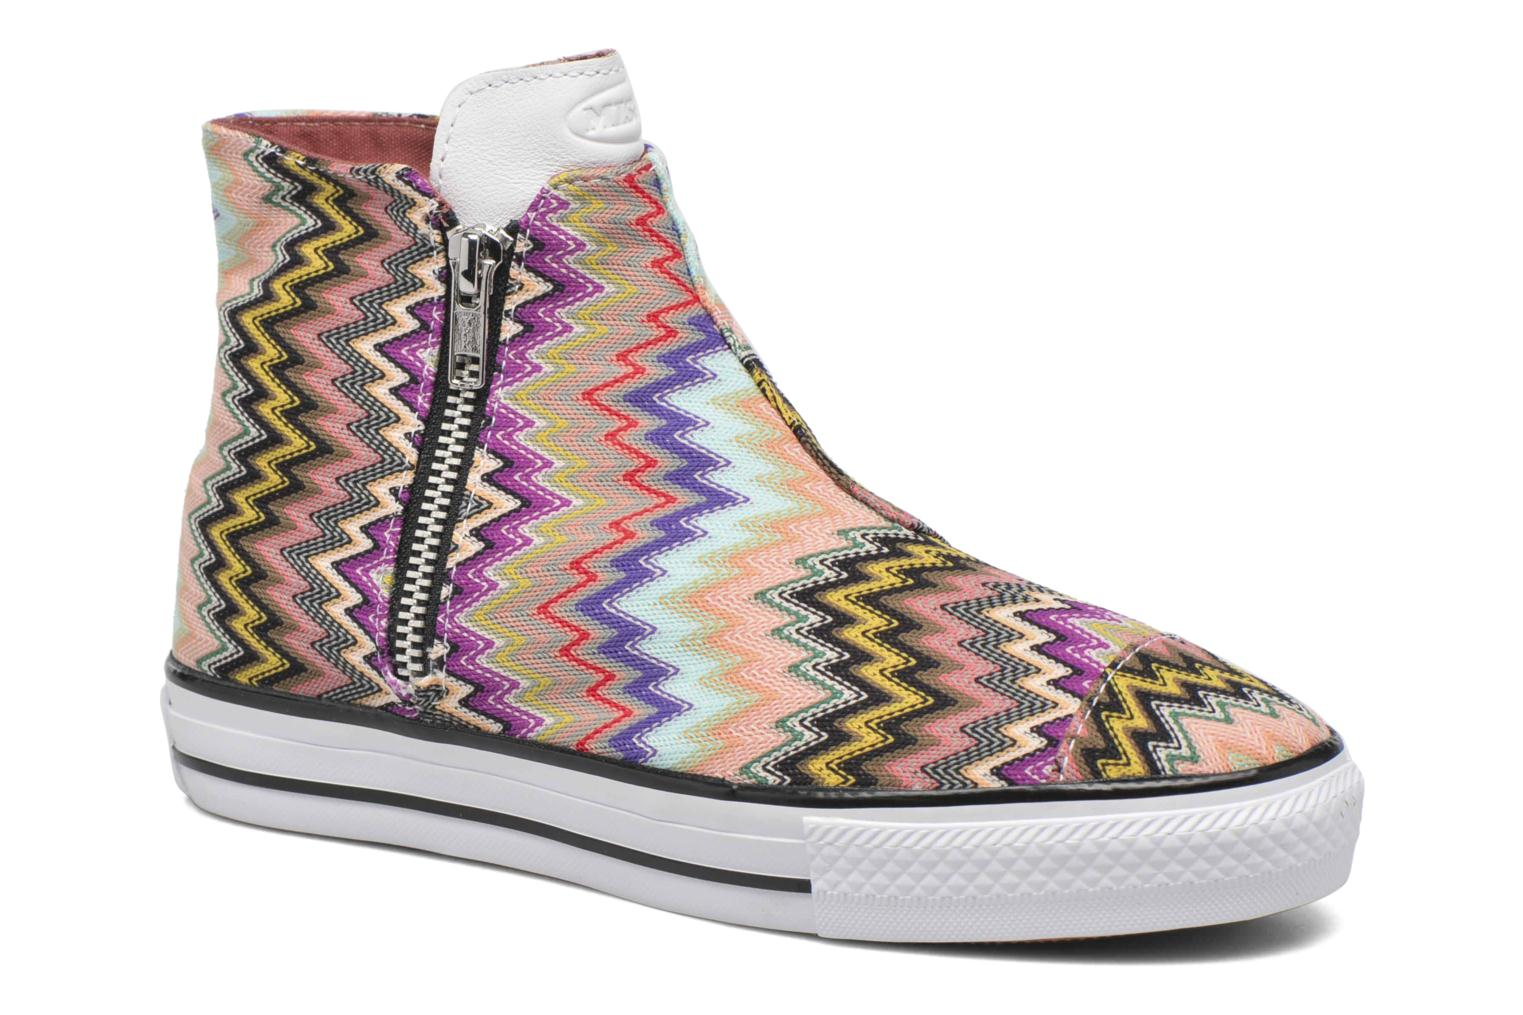 Ctas High Line Mid W Multi/White/Black